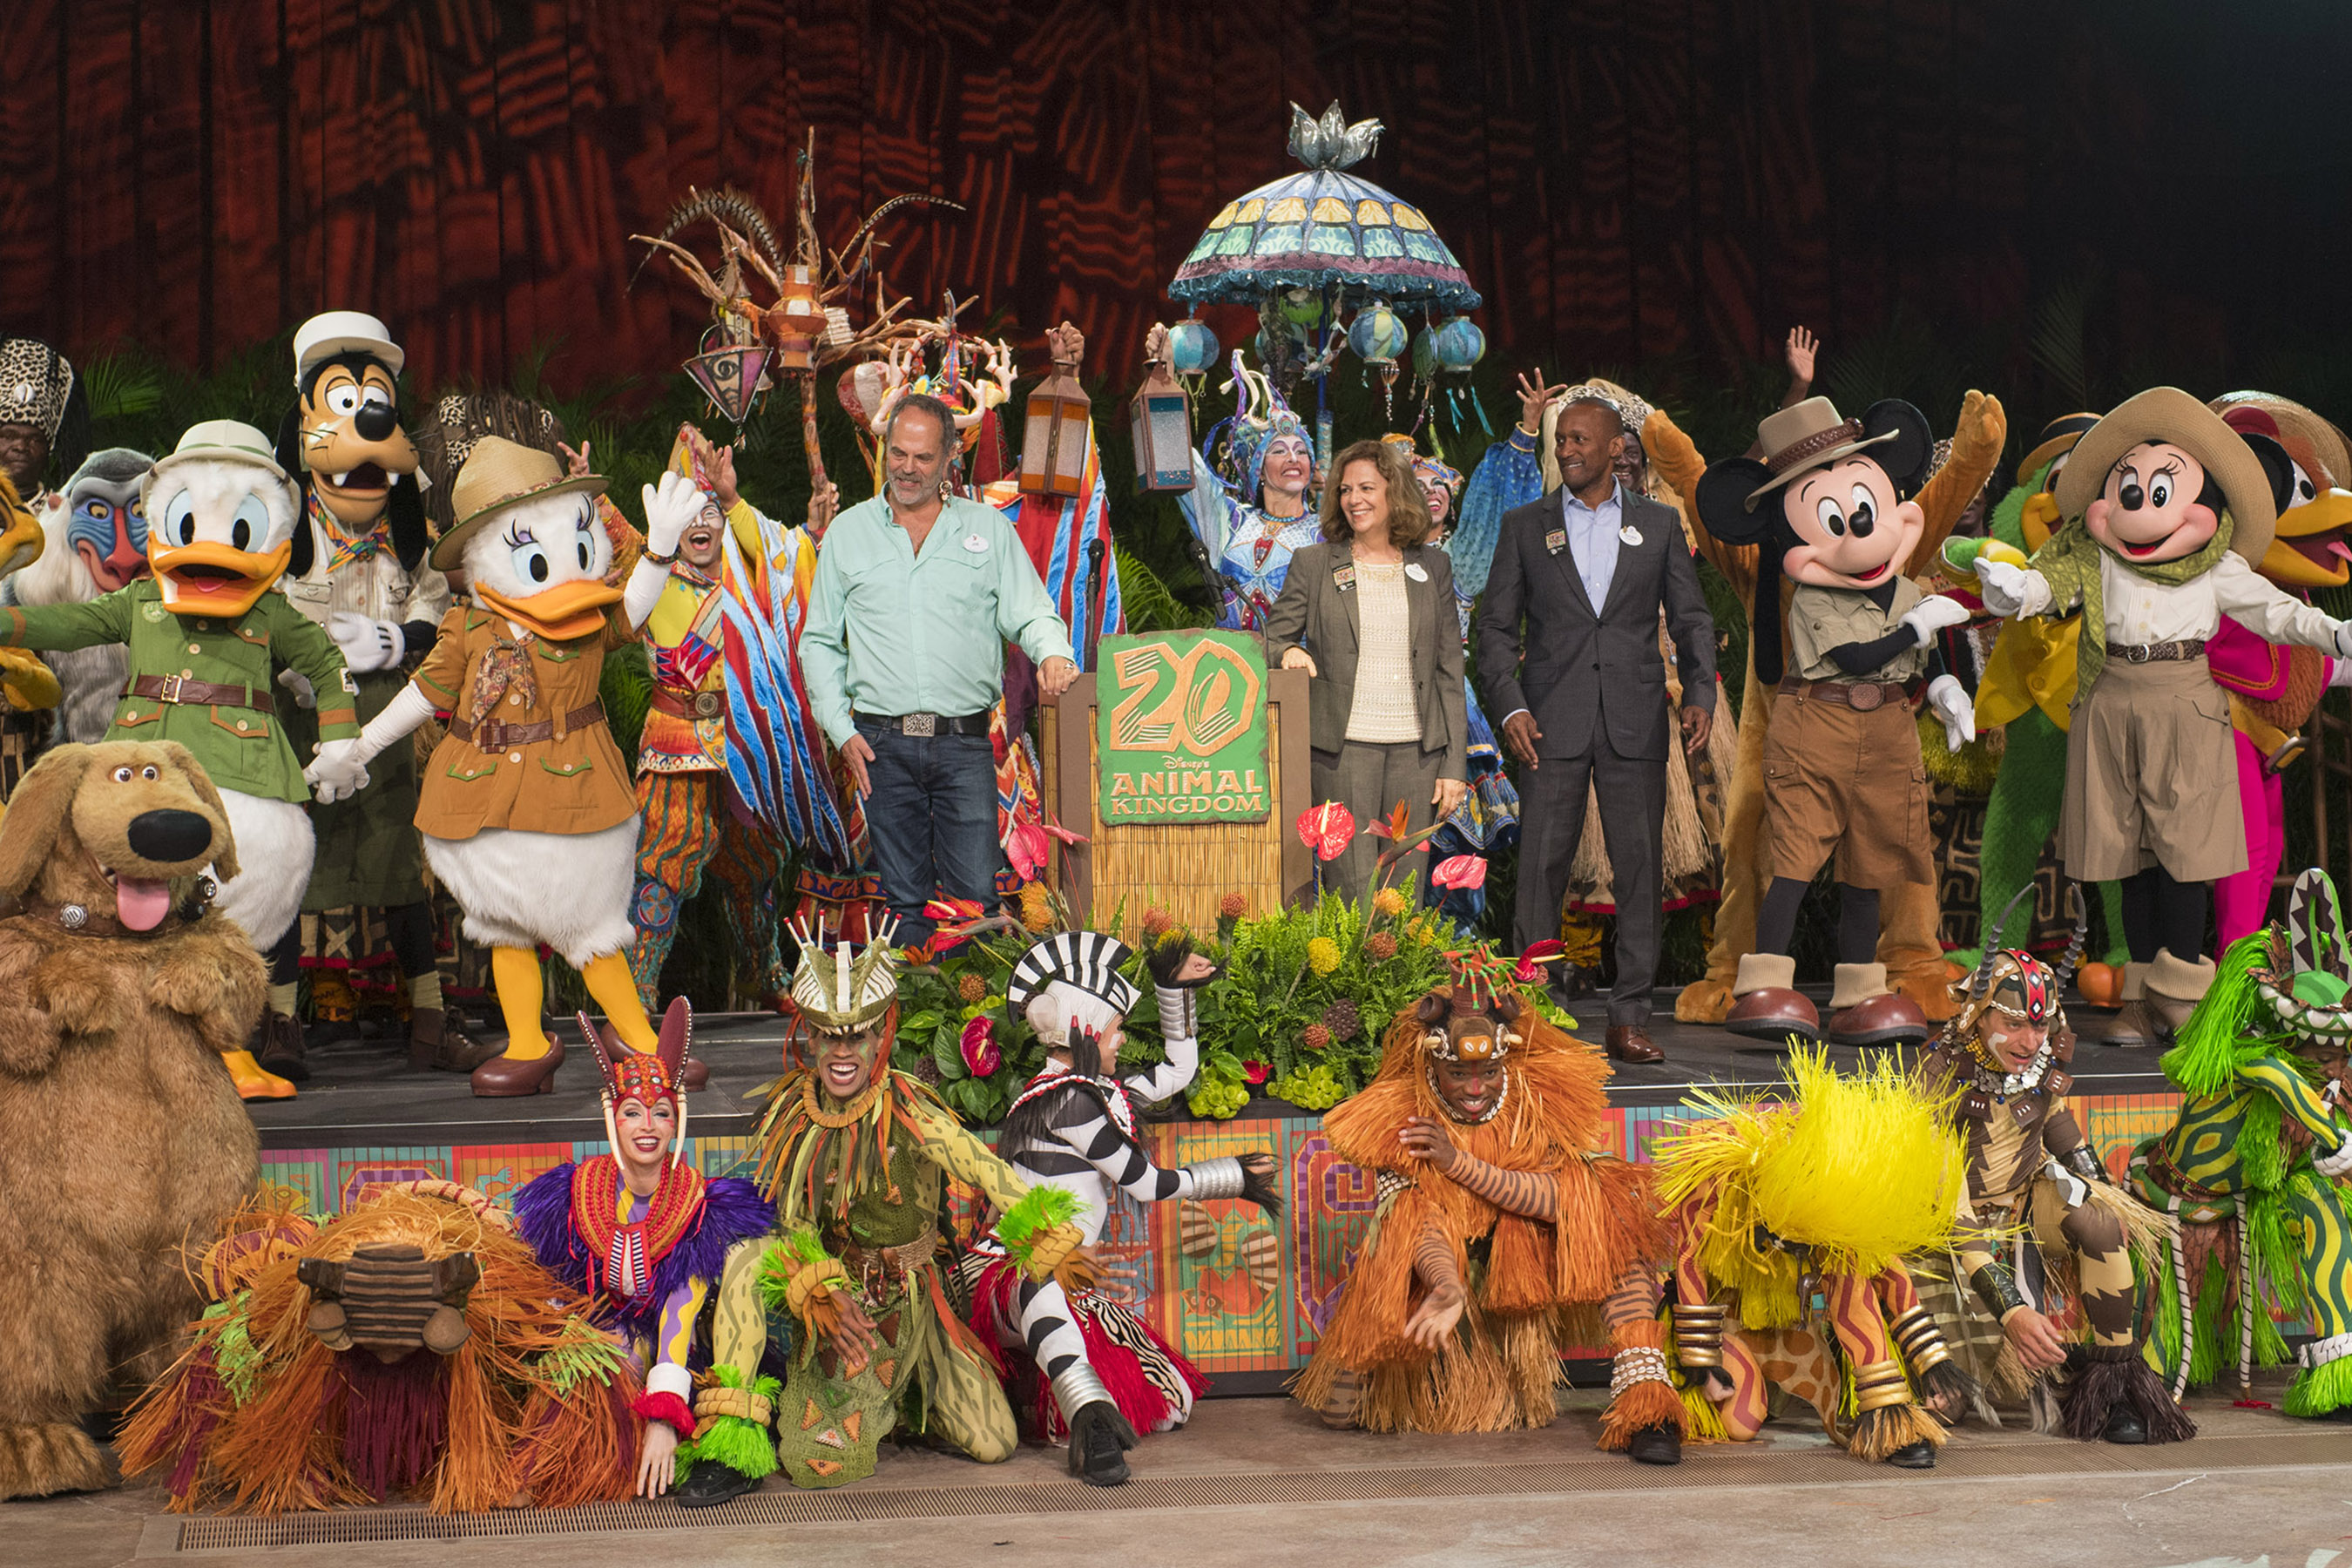 """New Species of Theme Park."" Disney's Animal Kingdom Marks 20-Year Anniversary in Special Earth Day Ceremonies"